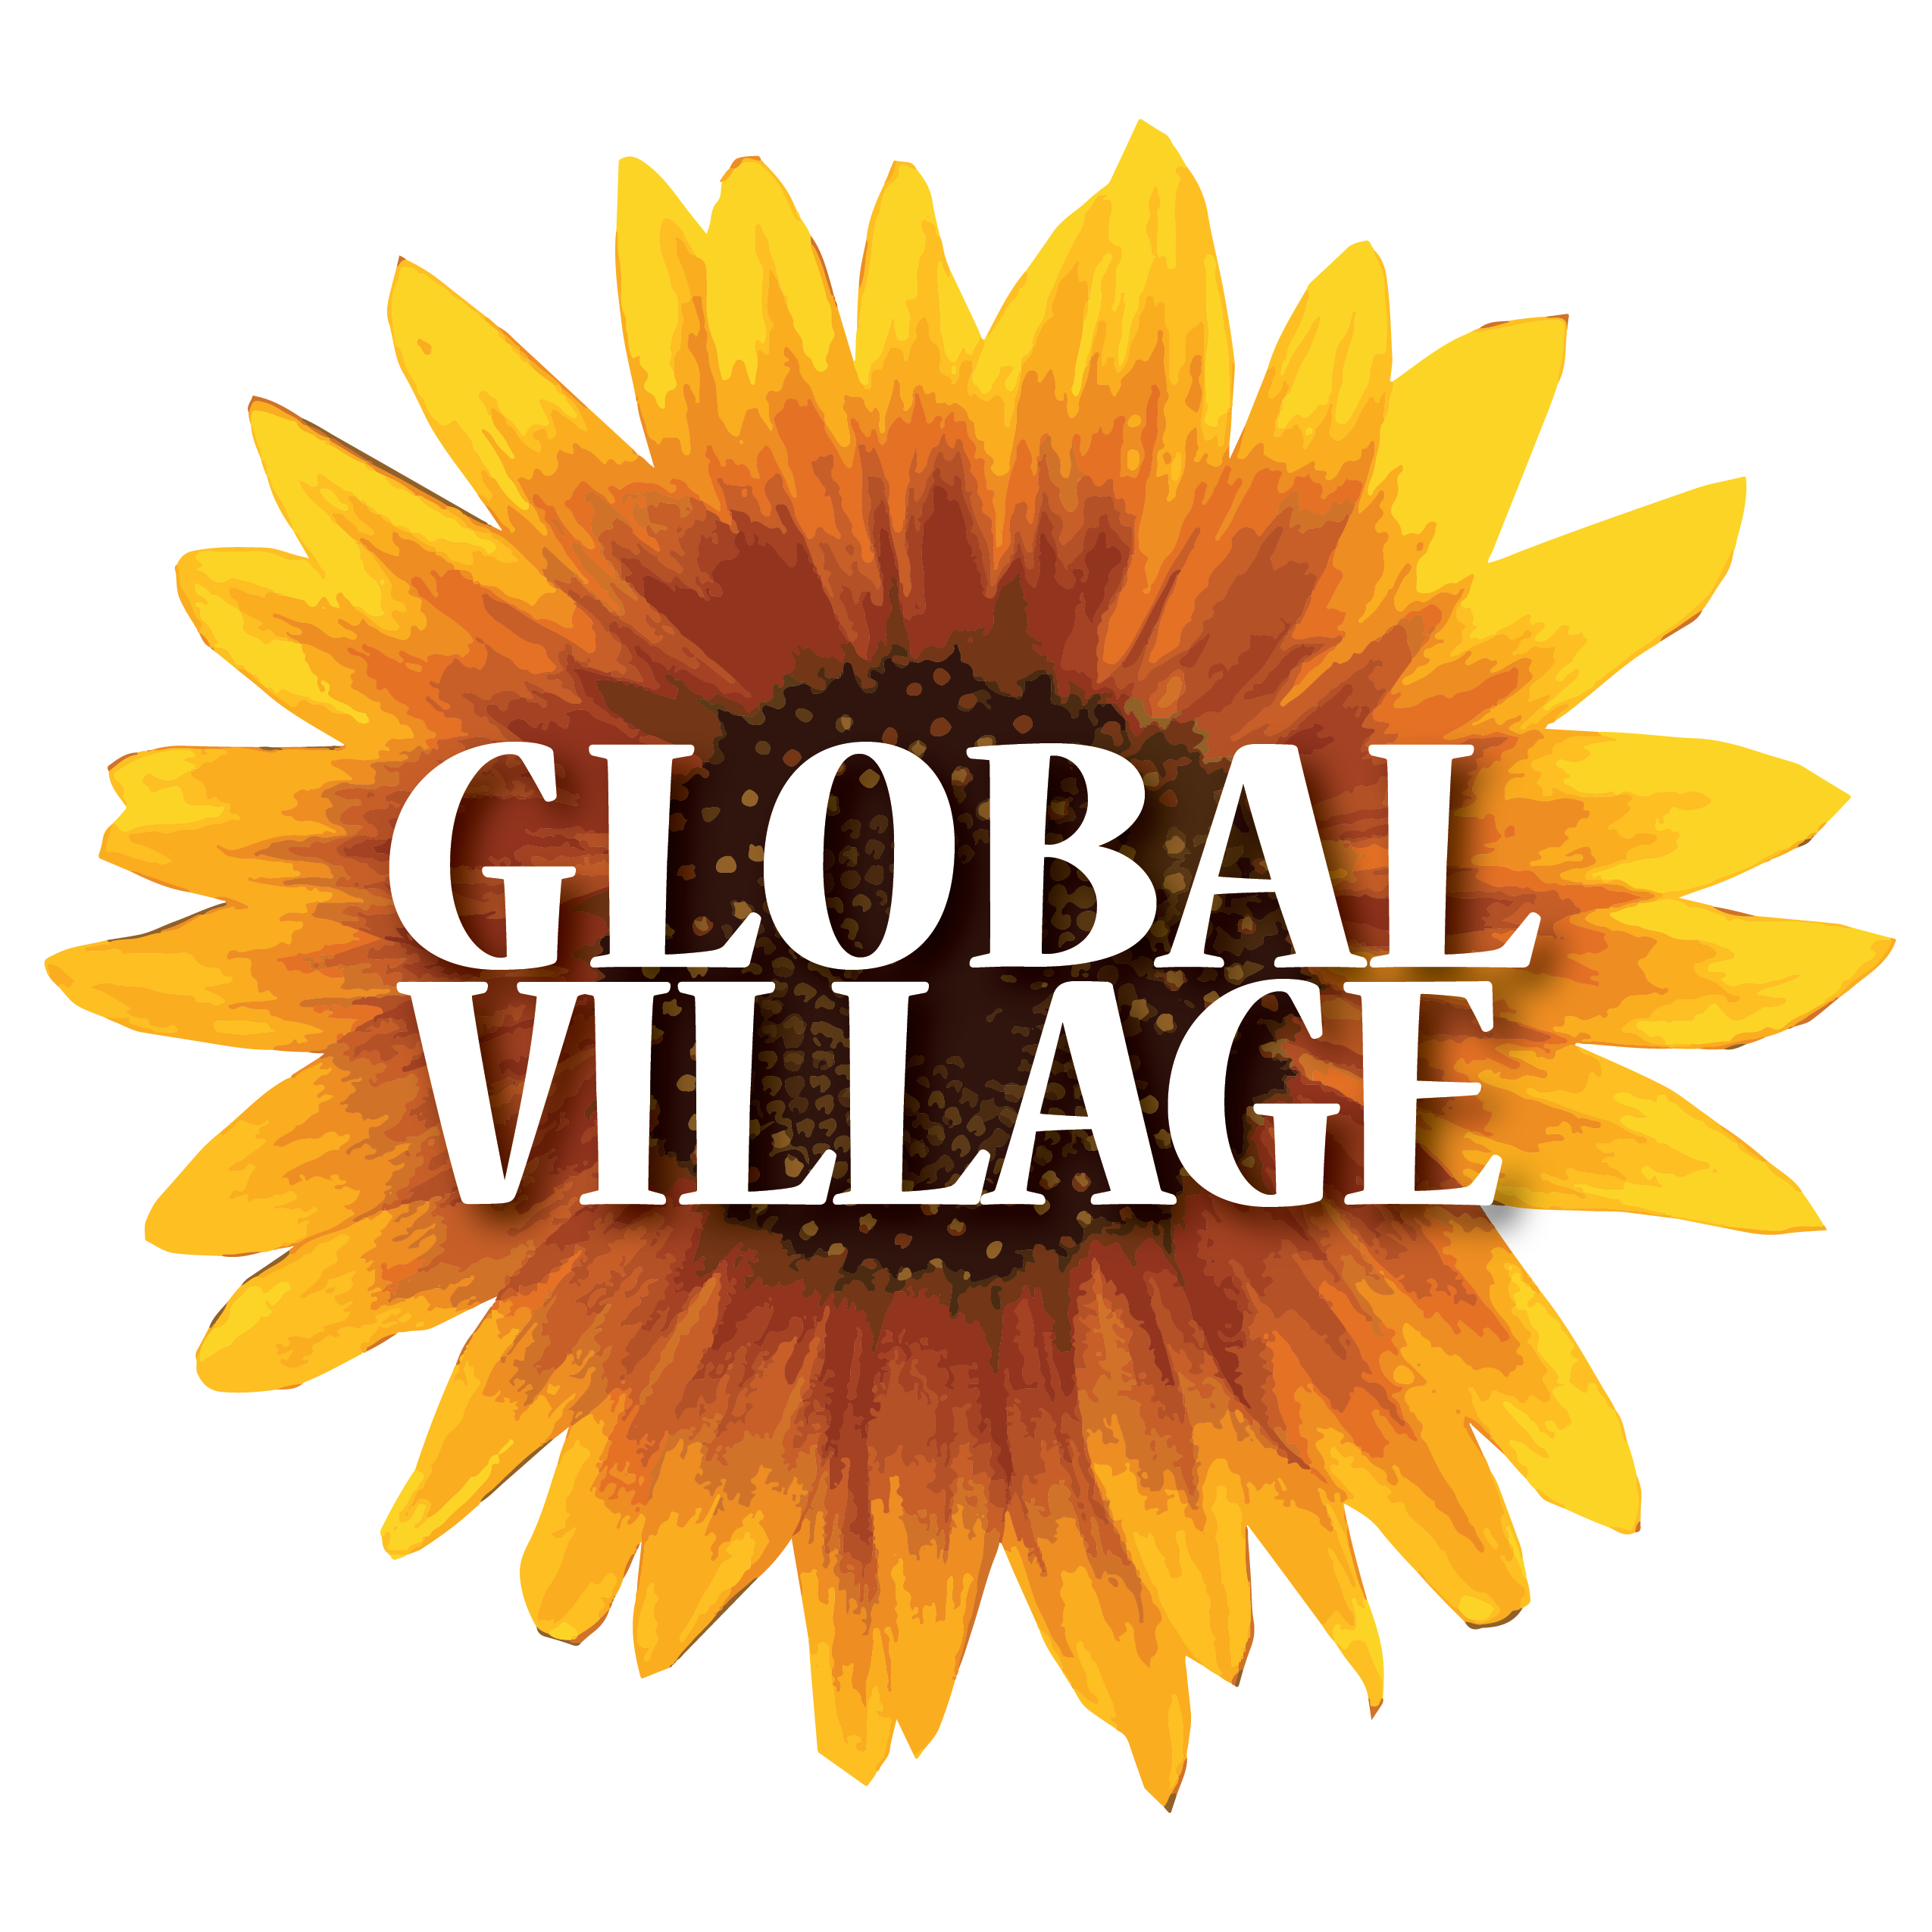 Global Village Farms